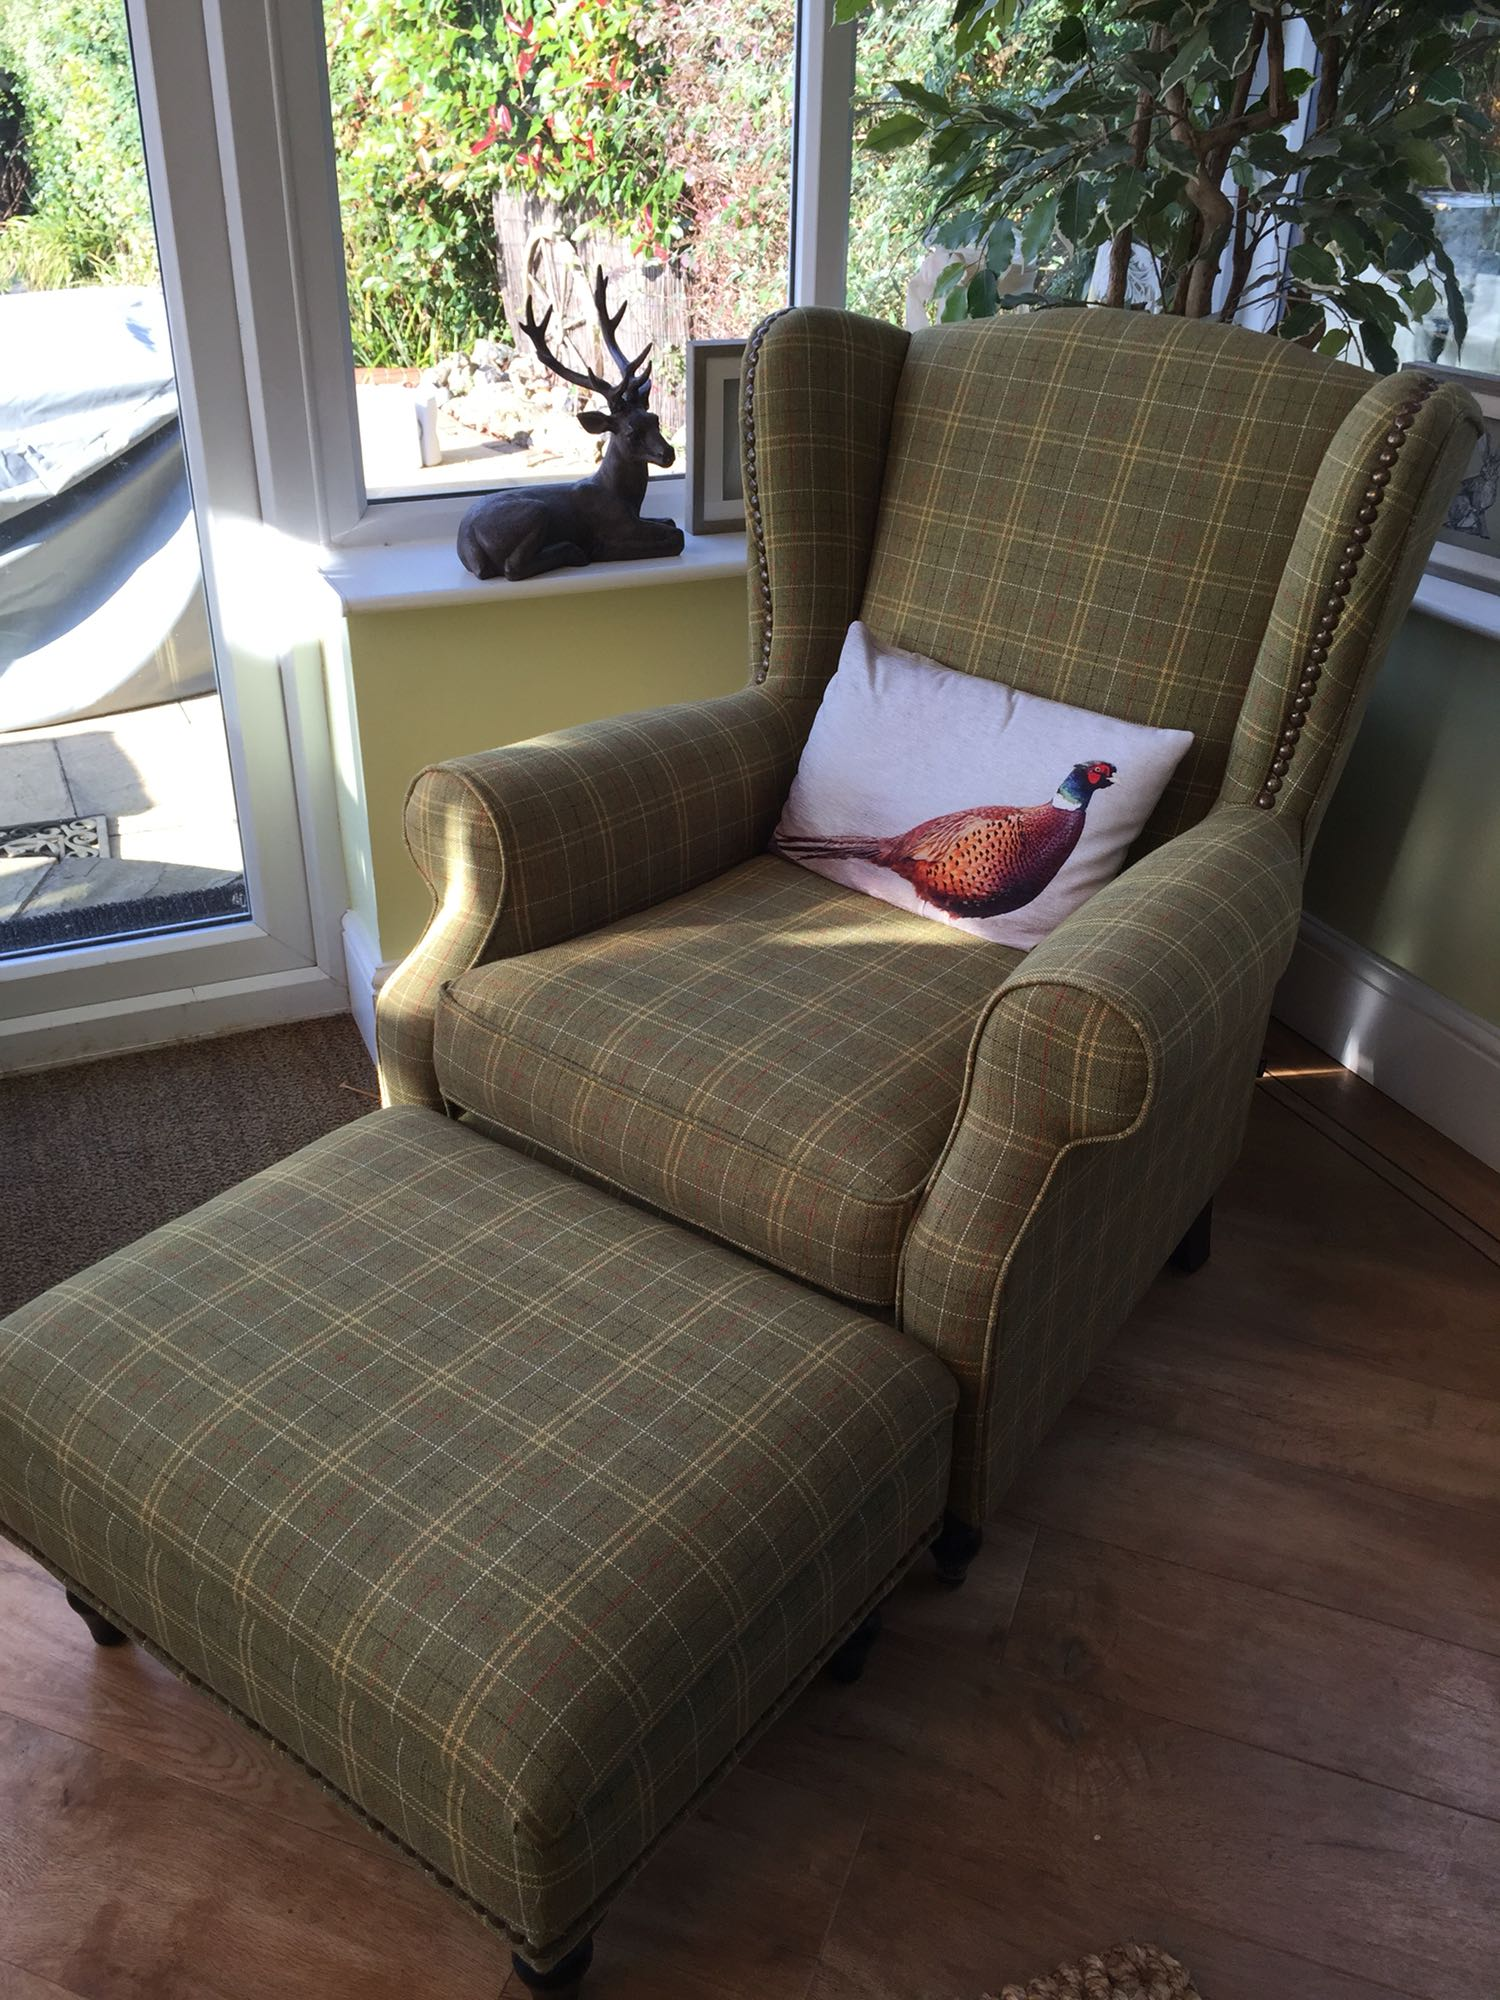 Used Wingback Chairs Wingback Chairs For Sale In Uk 57 Used Wingback Chairs